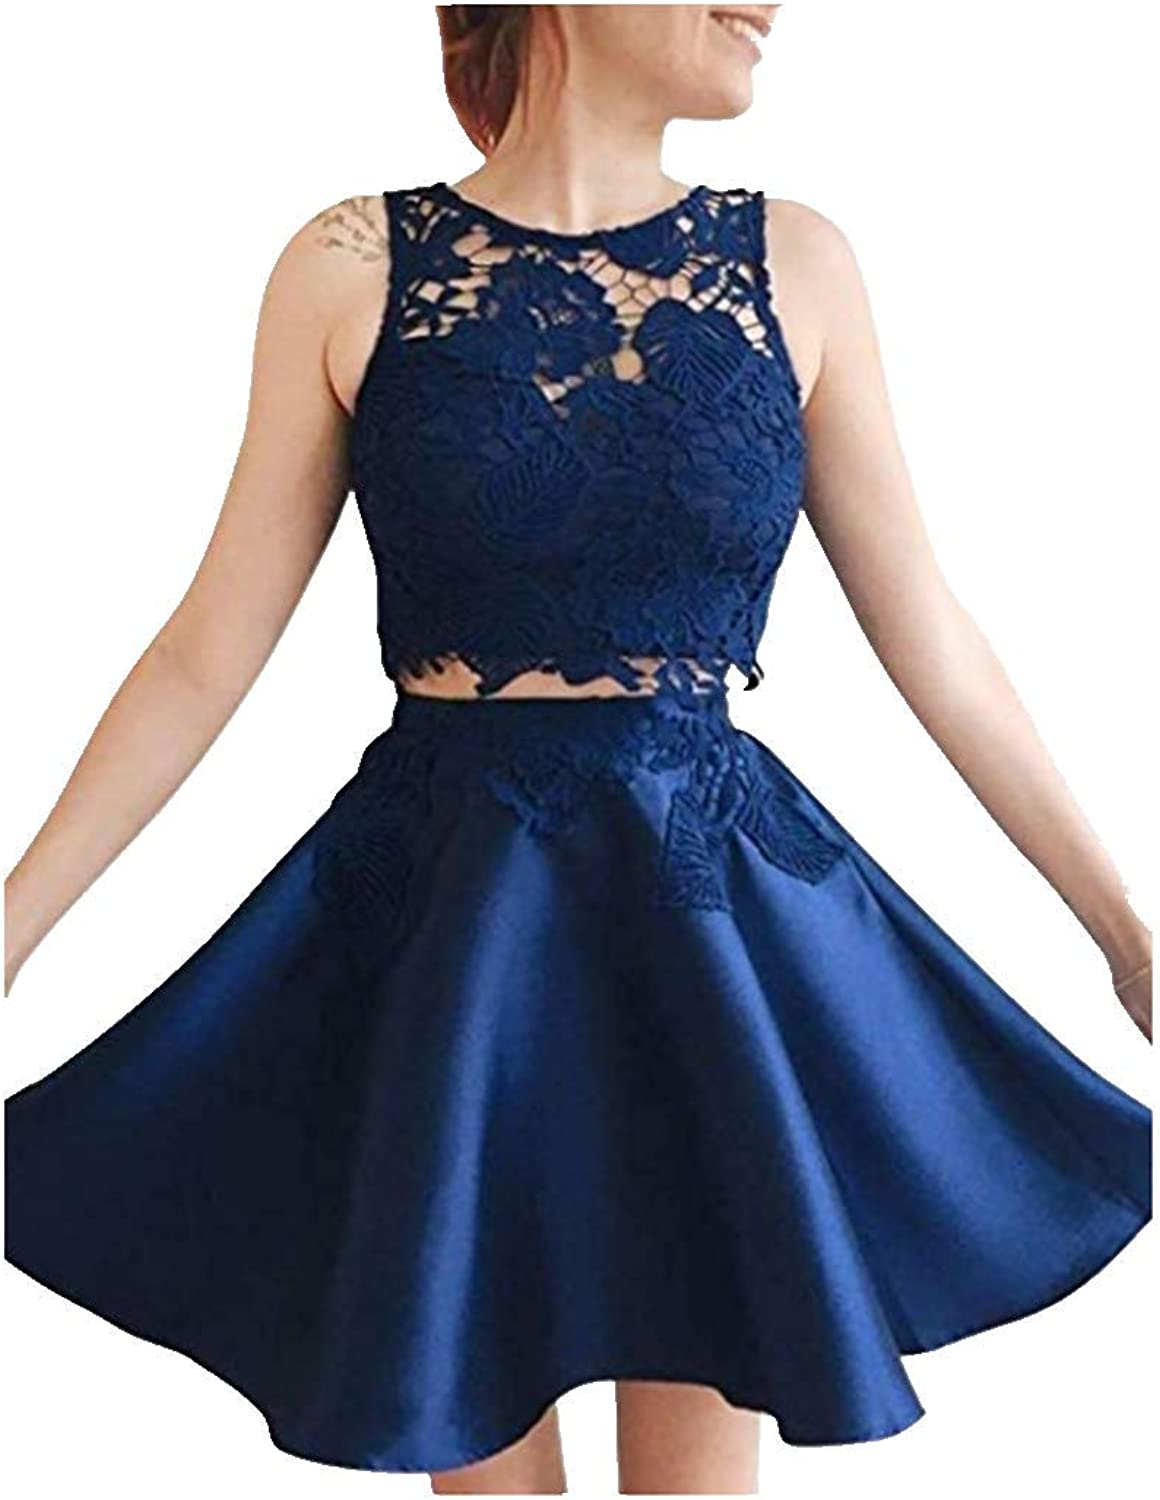 FWVR Lace Two Piece Homecoming Dresses for Juniors Short Satin Prom Party Gowns